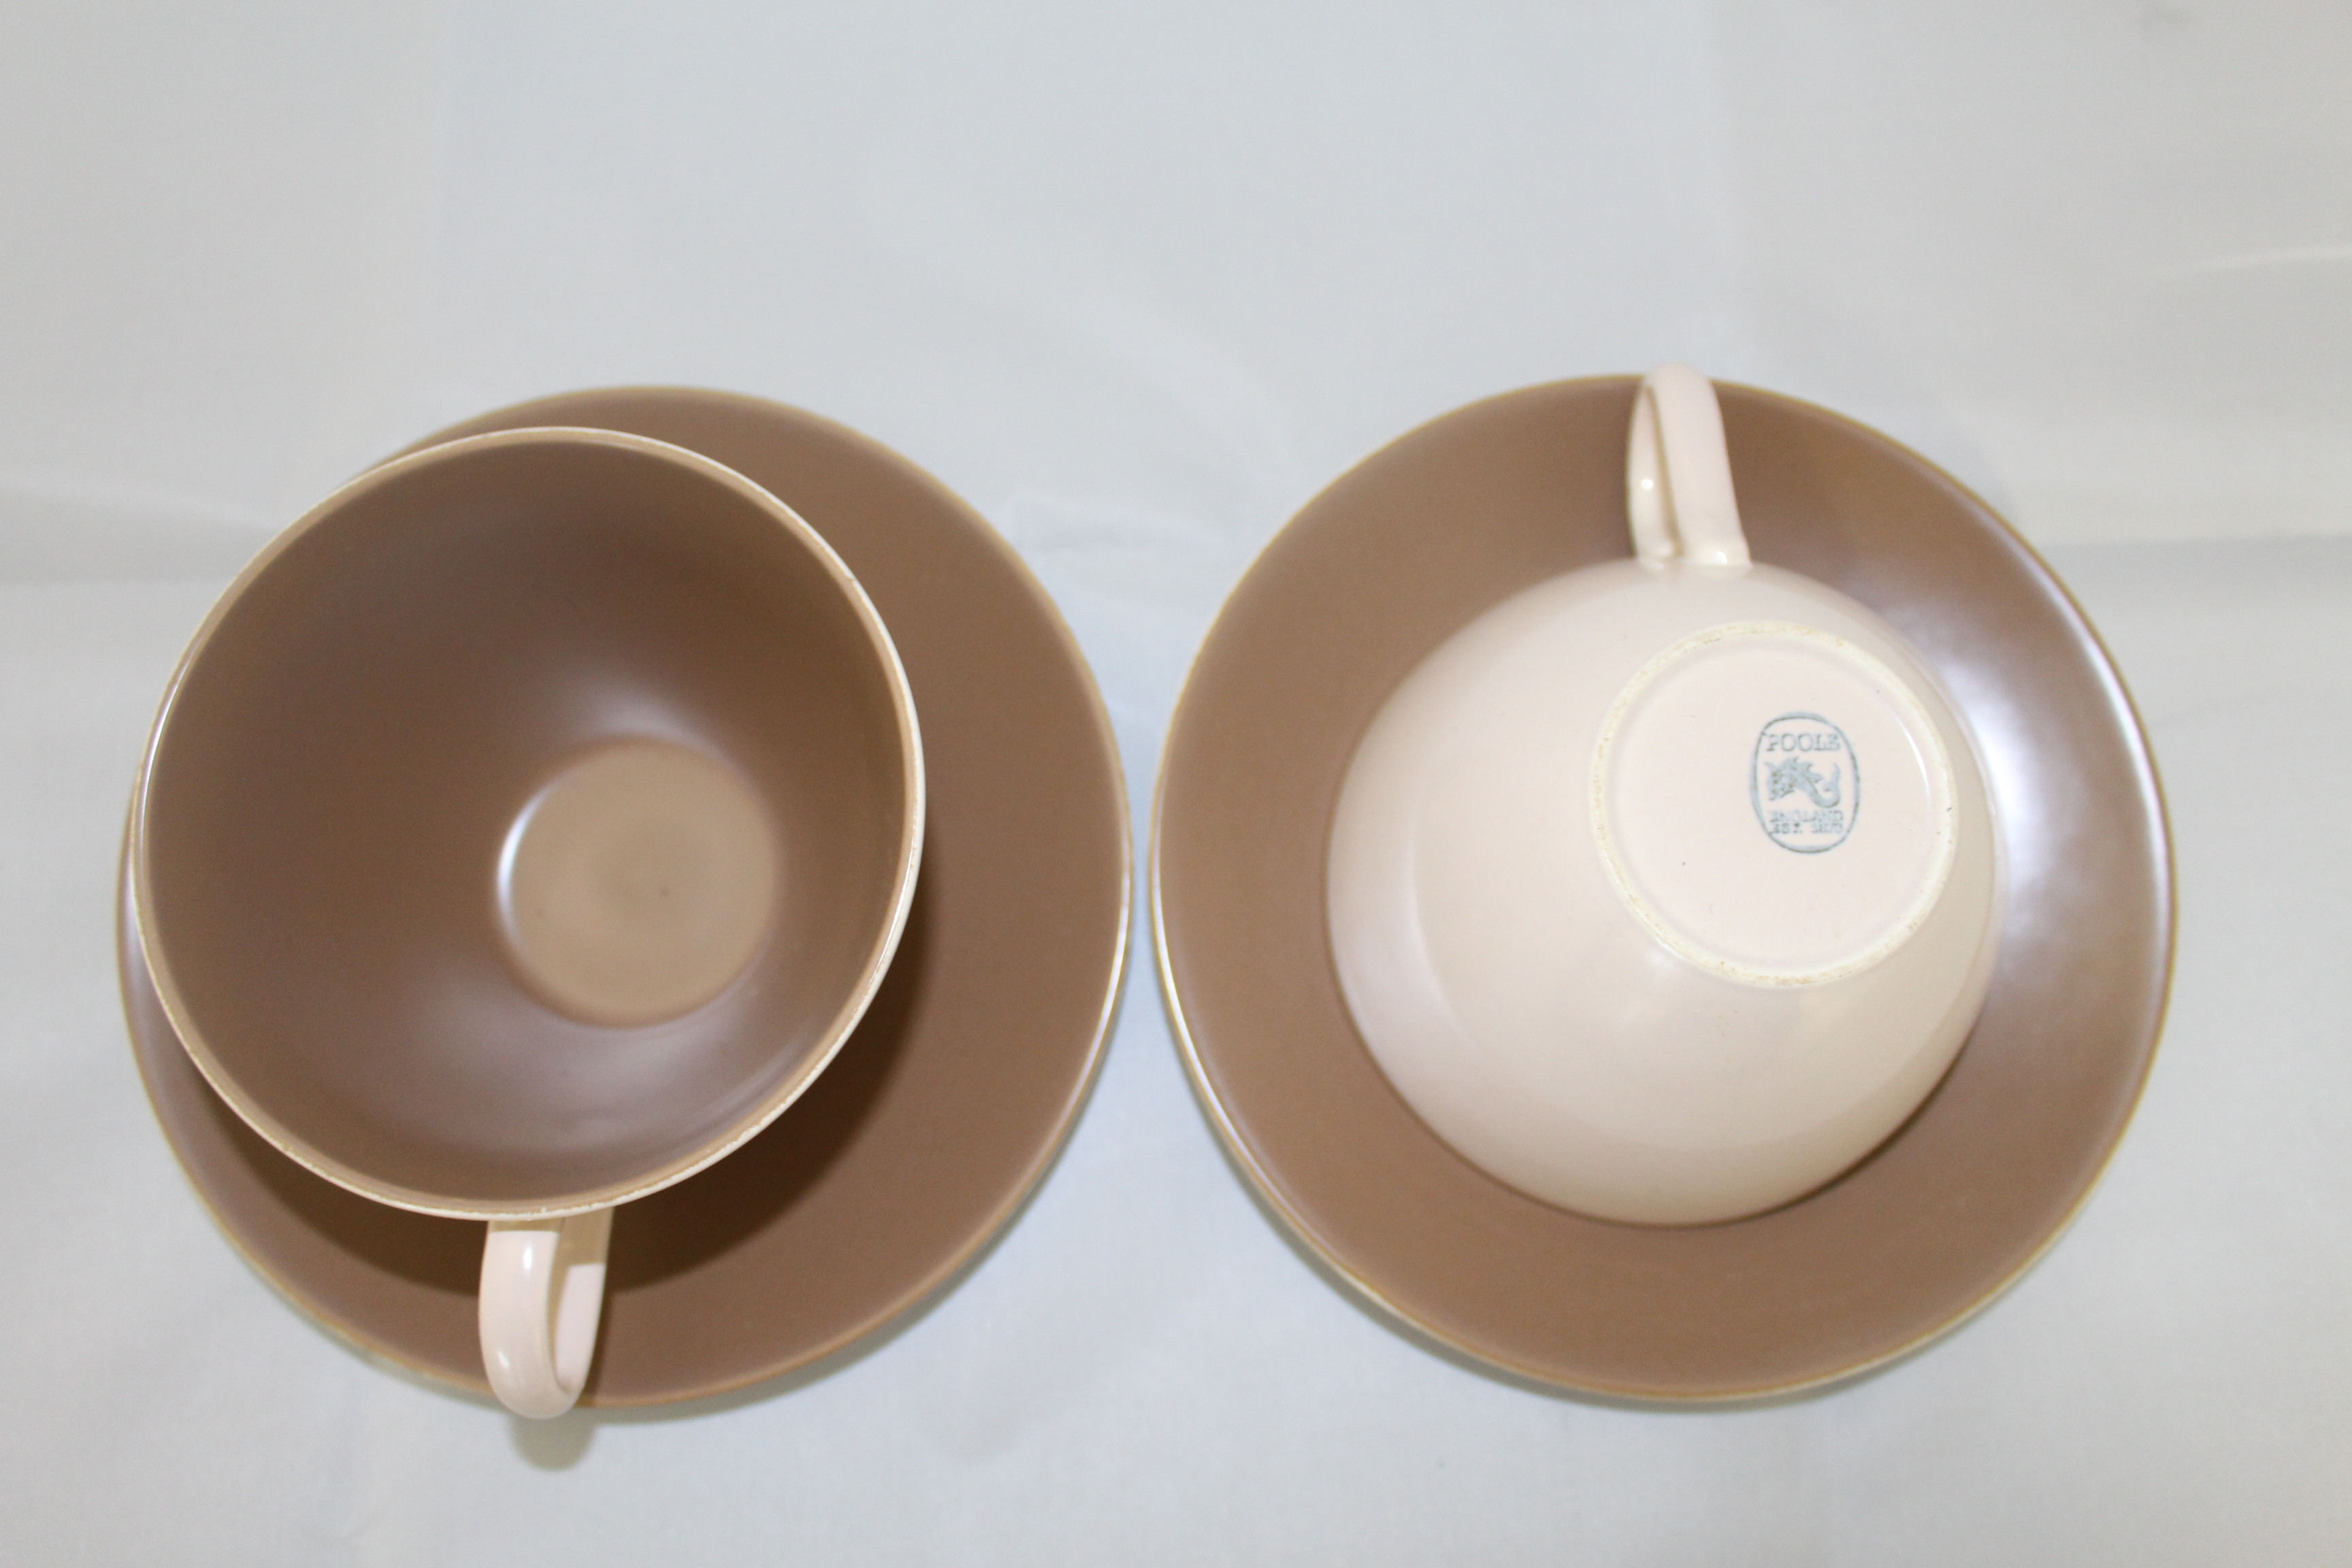 Pair of Poole Pottery Cups and Saucers